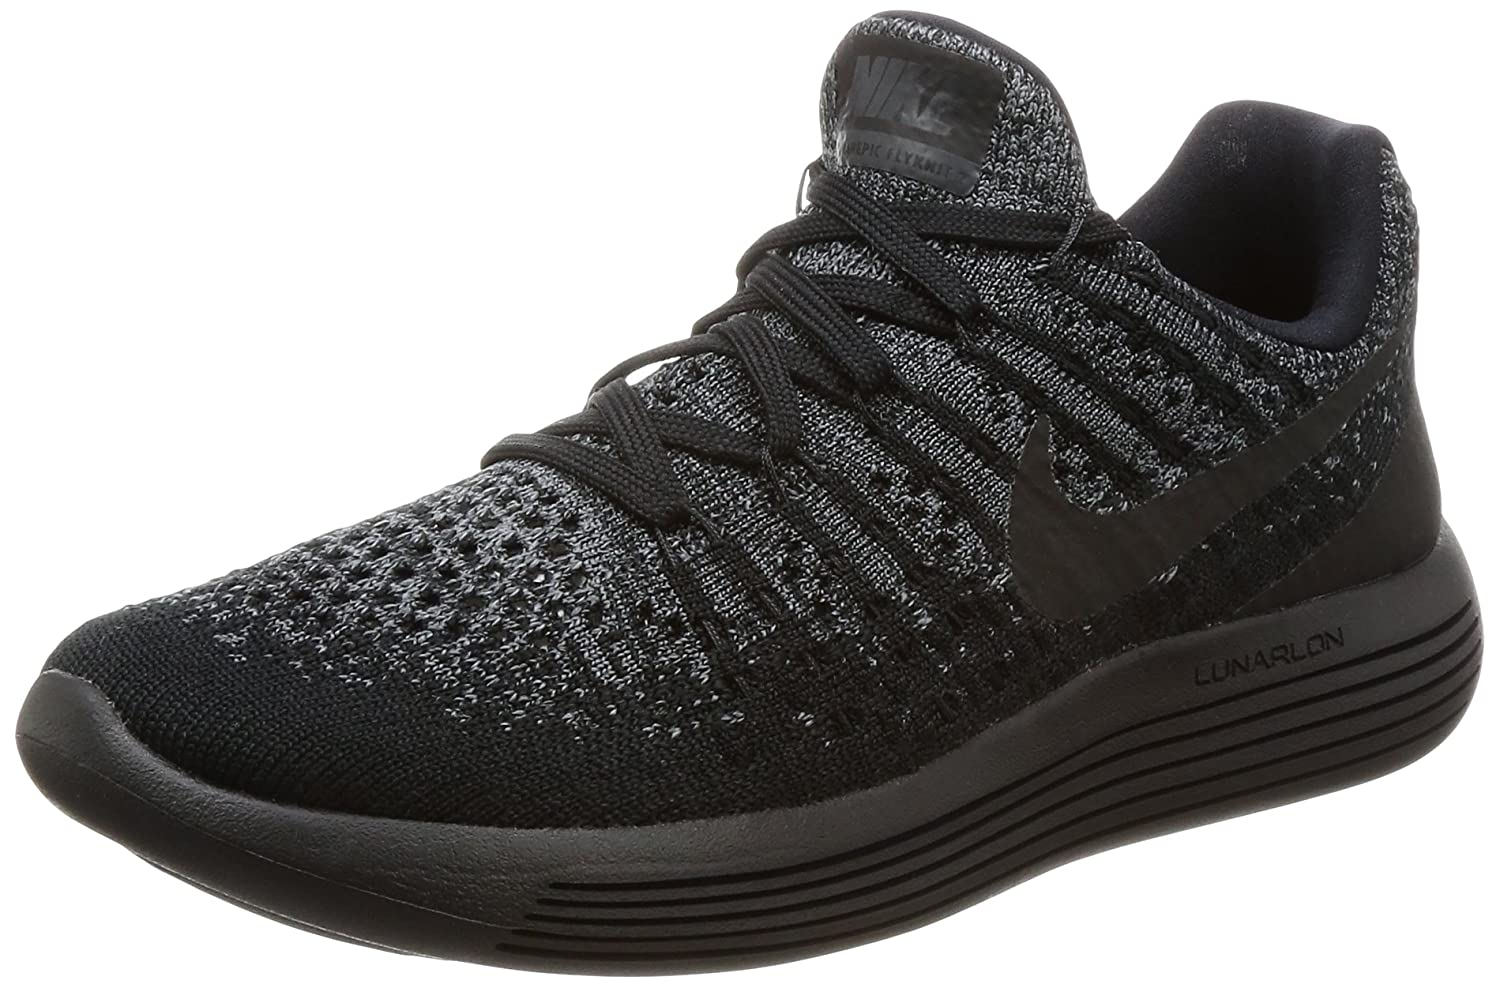 NIKE Women's Lunarepic Low B07468CYLX Flyknit 2 Running Shoe B07468CYLX Low 10.5 B(M) US|Black/Dark Grey/Racer Blue/Black bbf399